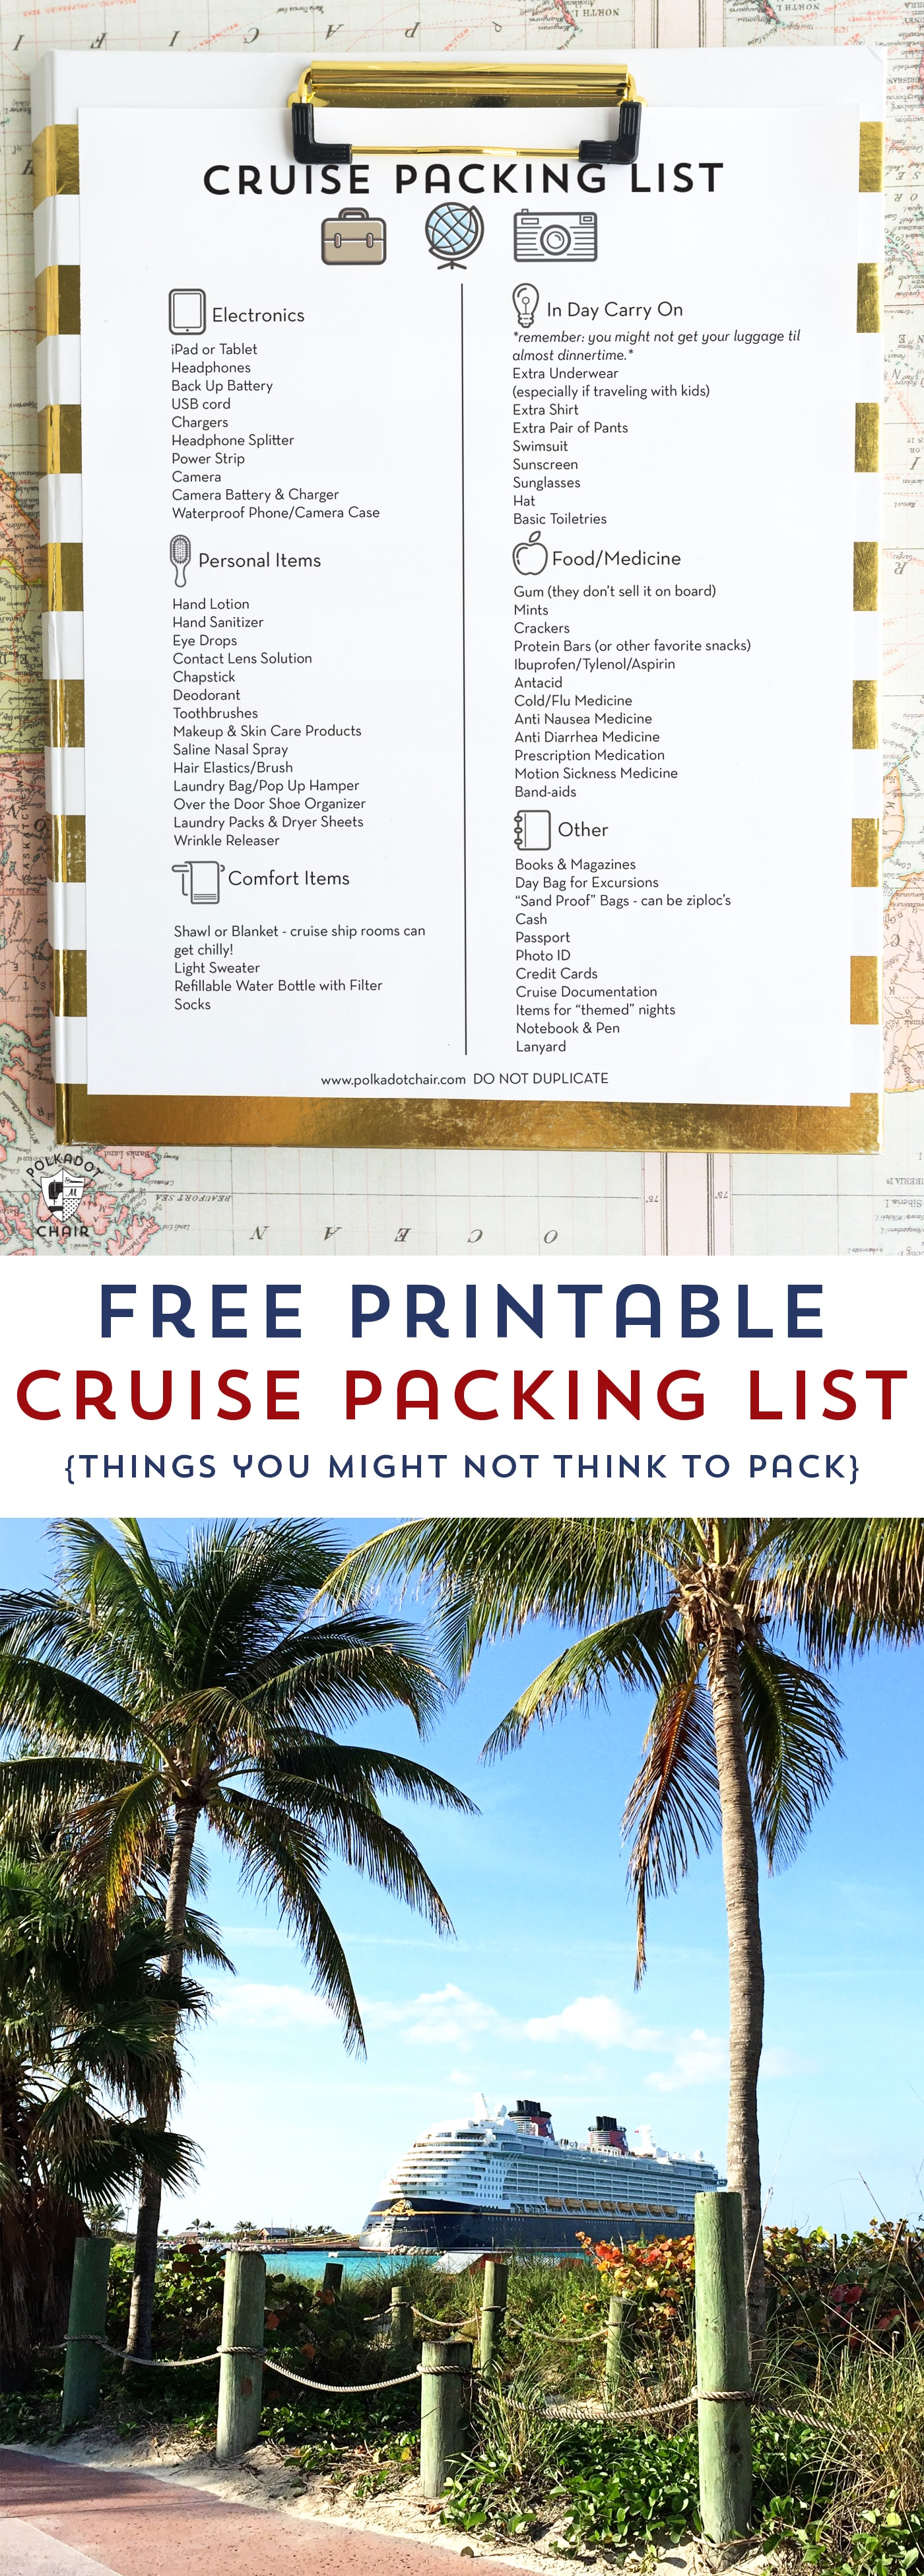 Free Printable Cruise Packing List